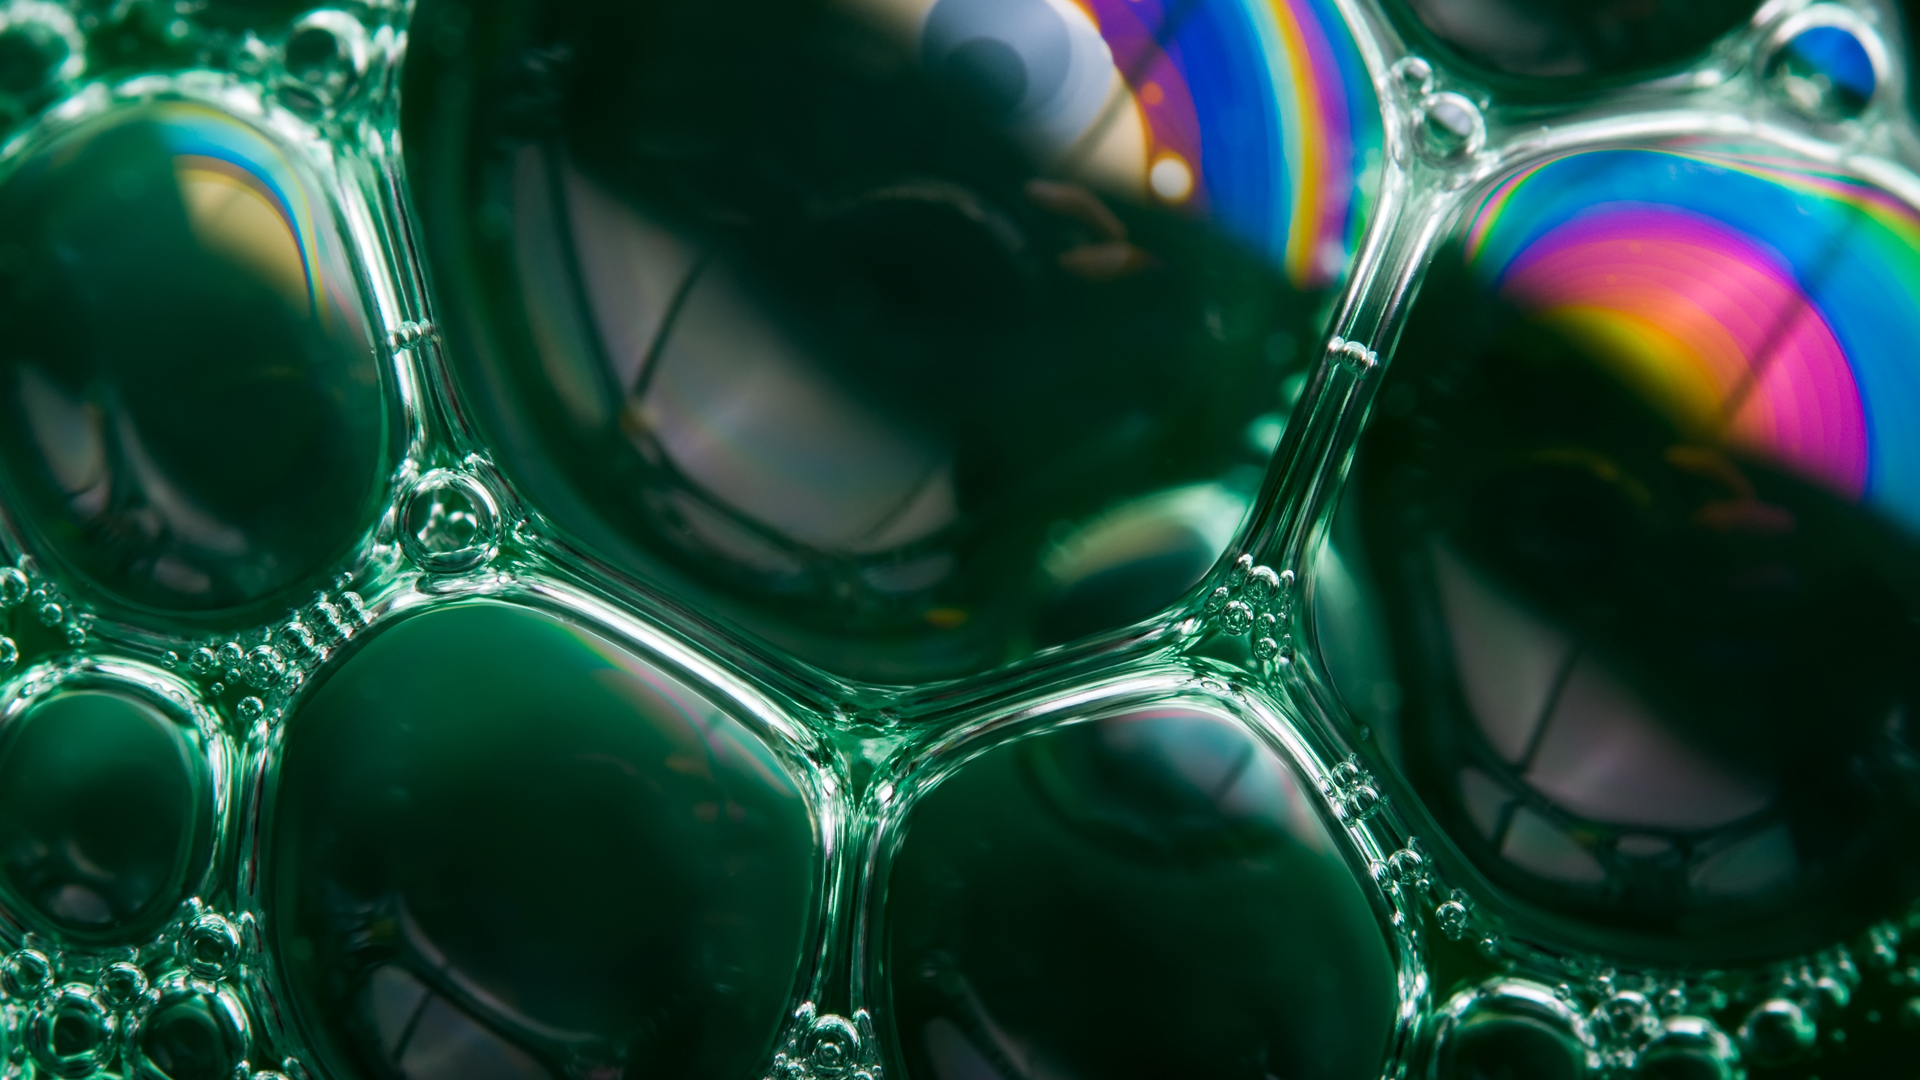 suap bubble rainbows shameless HD Wallpaper